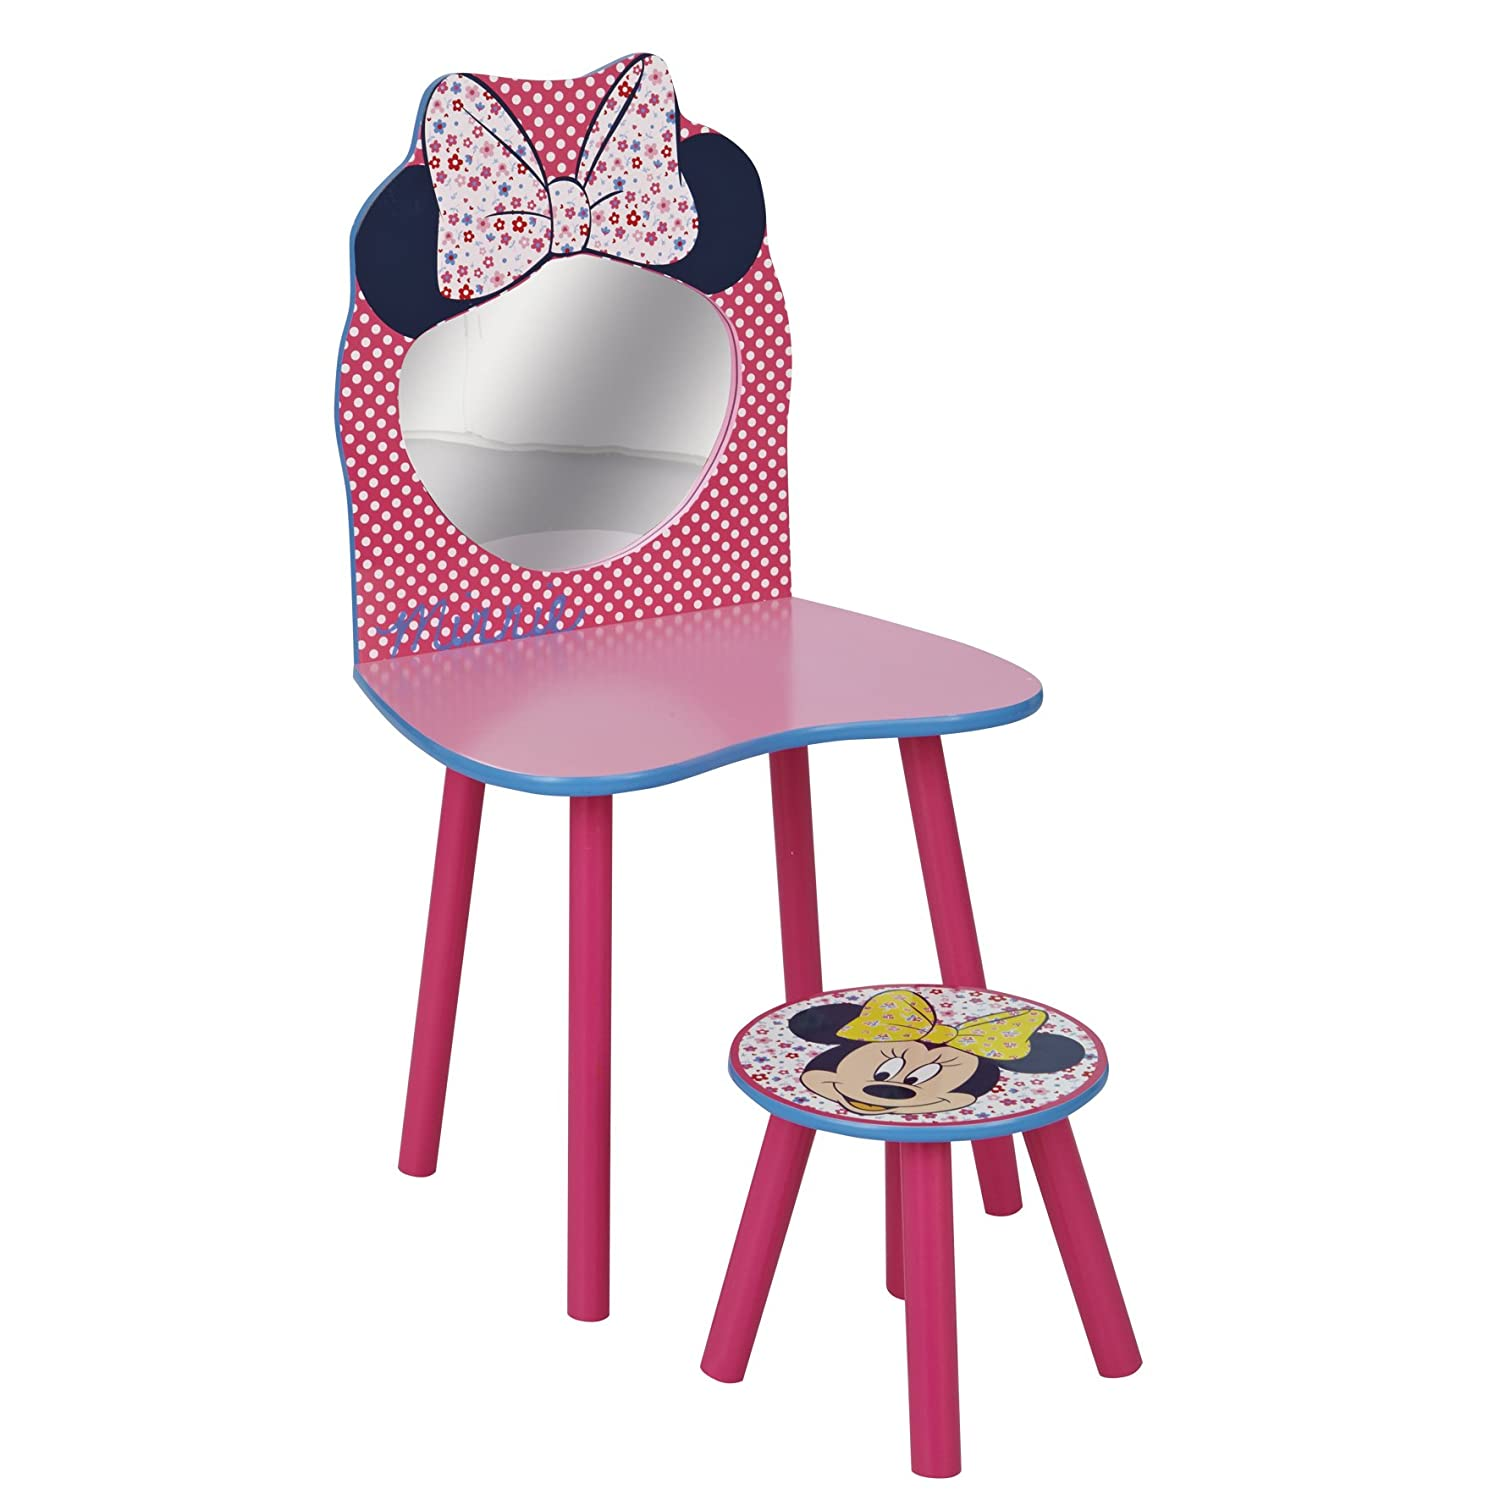 Worlds Apart 863989 Coiffeuse et Tabouret Disney Minnie Rose